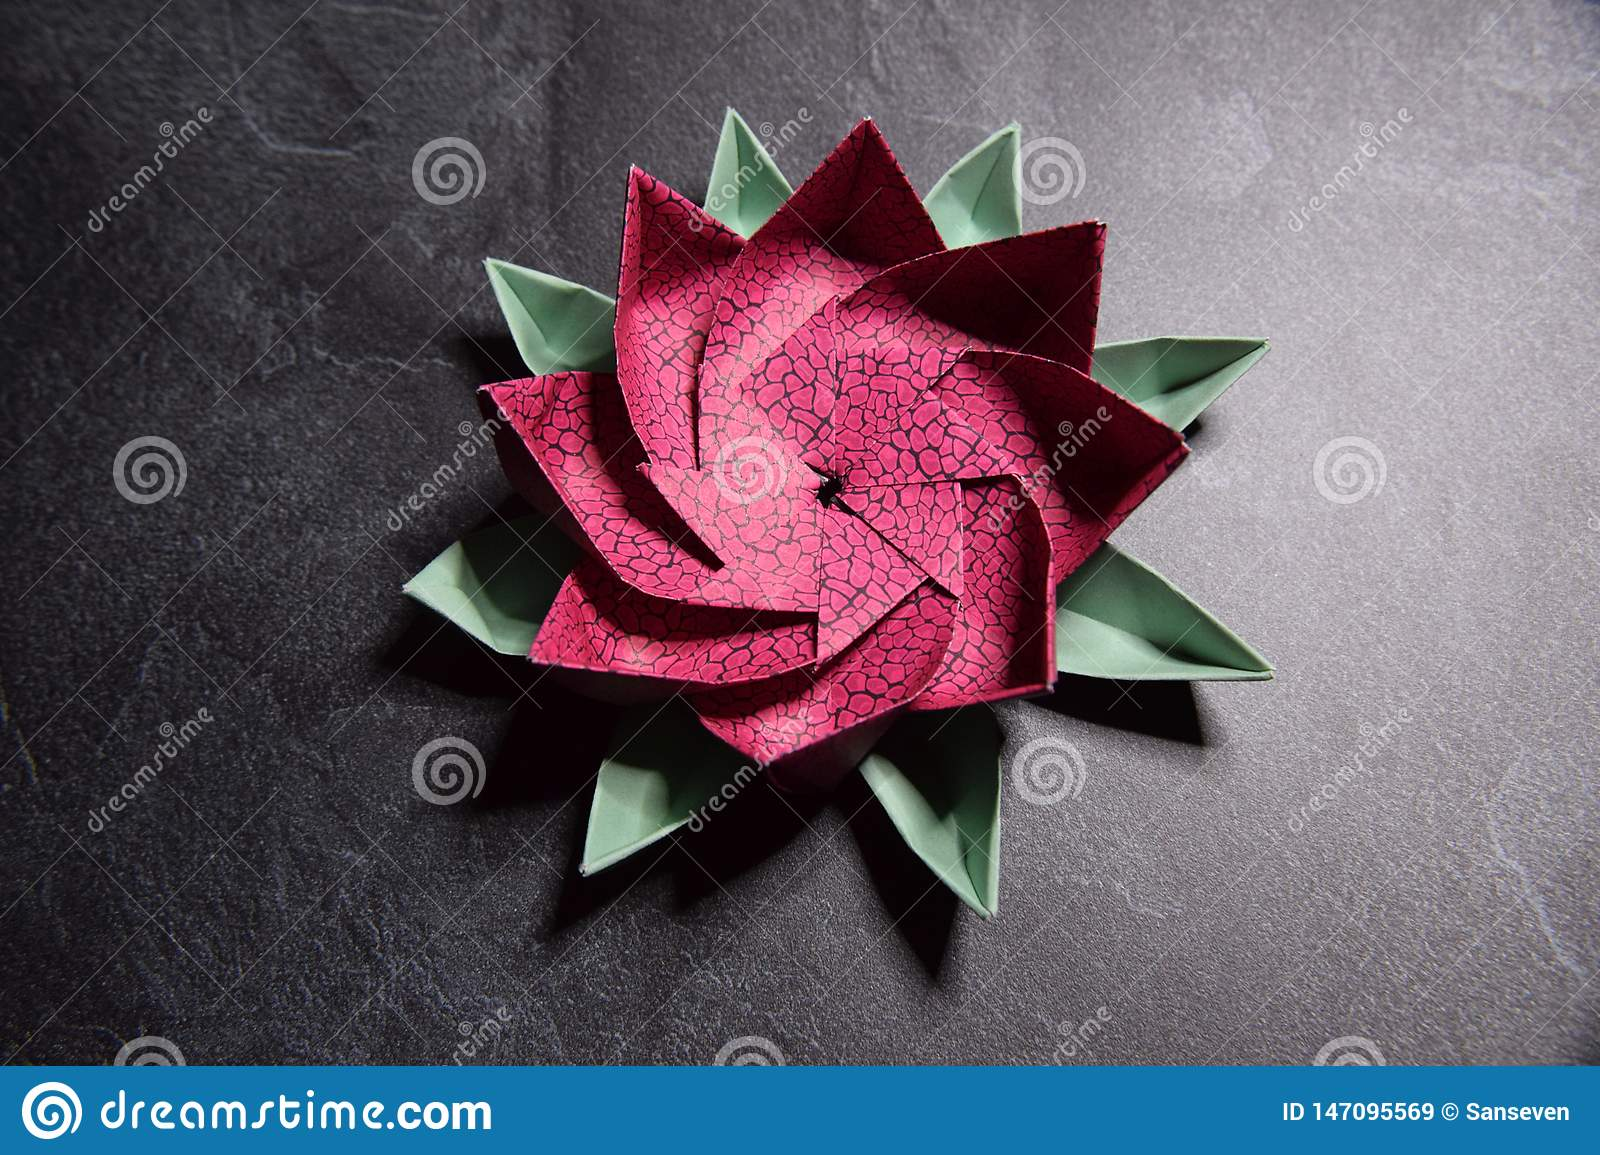 Pink Origami Lotus Flower Paper Art On Textured Background Stock